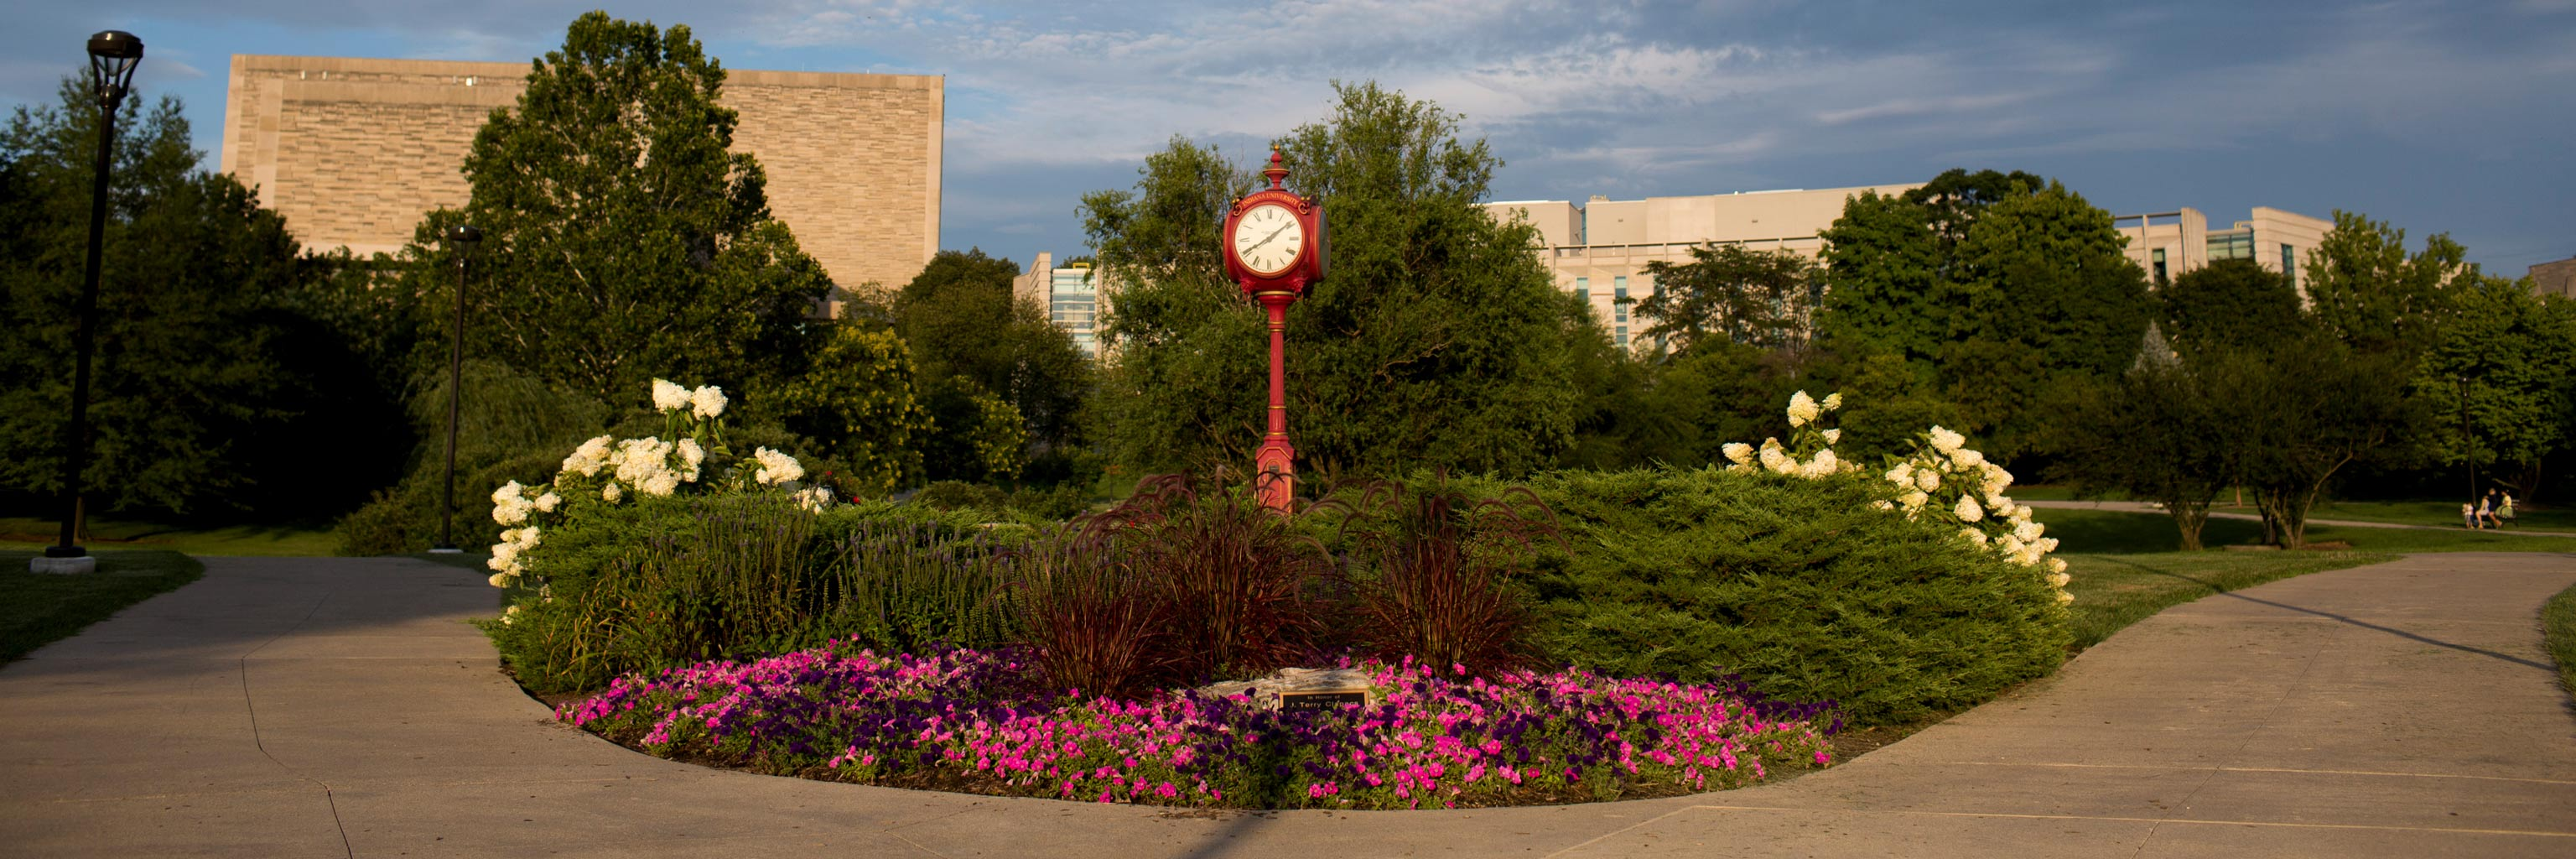 flowers, pathway, and decorative red clock